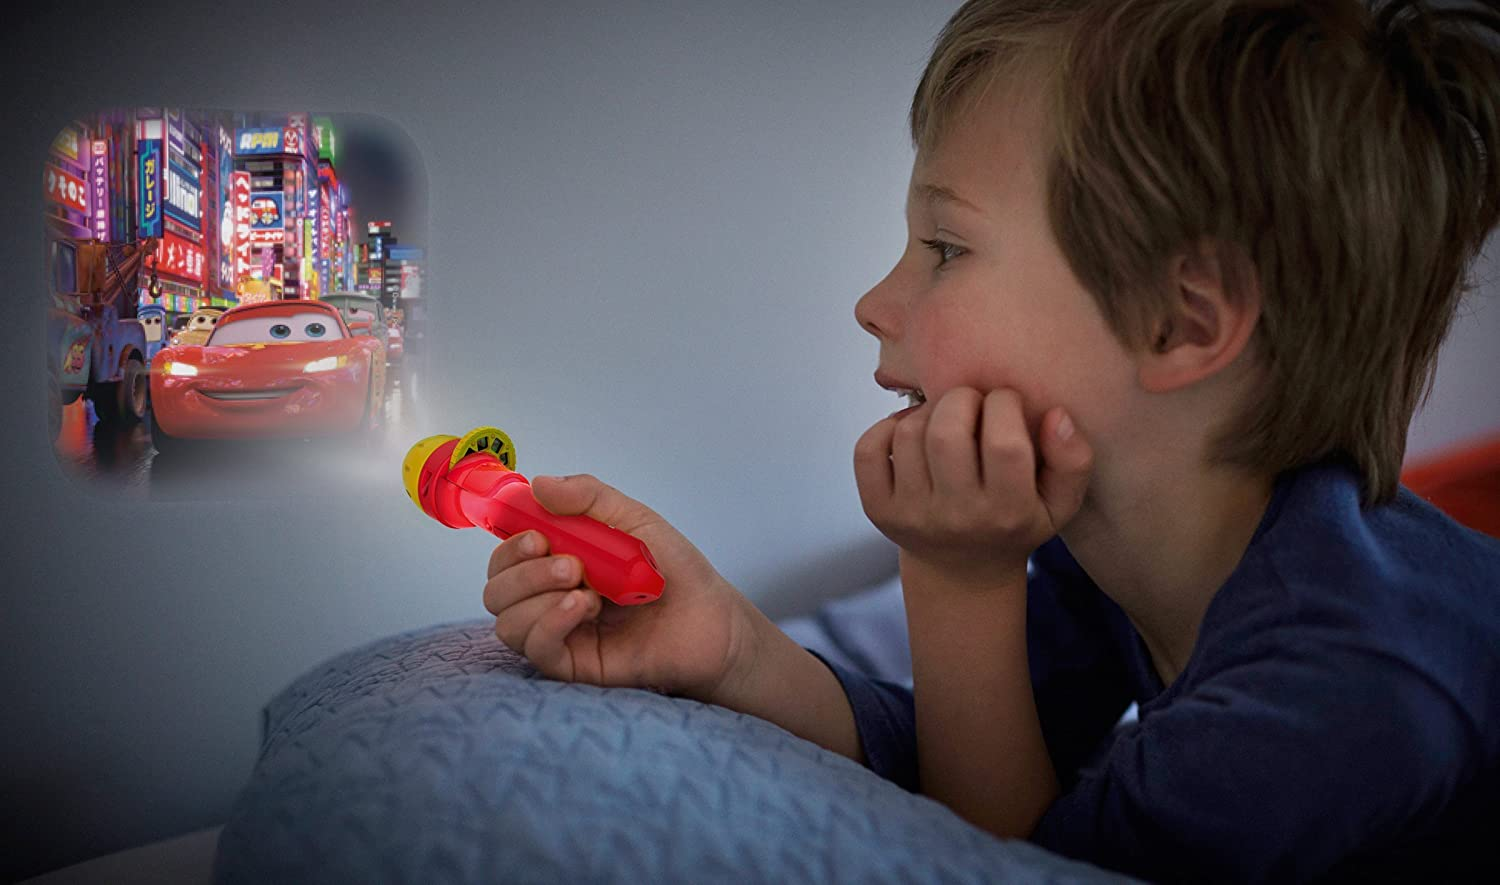 Philips Disney Cars LED Taschenlampe mit Projektor rot 717883216